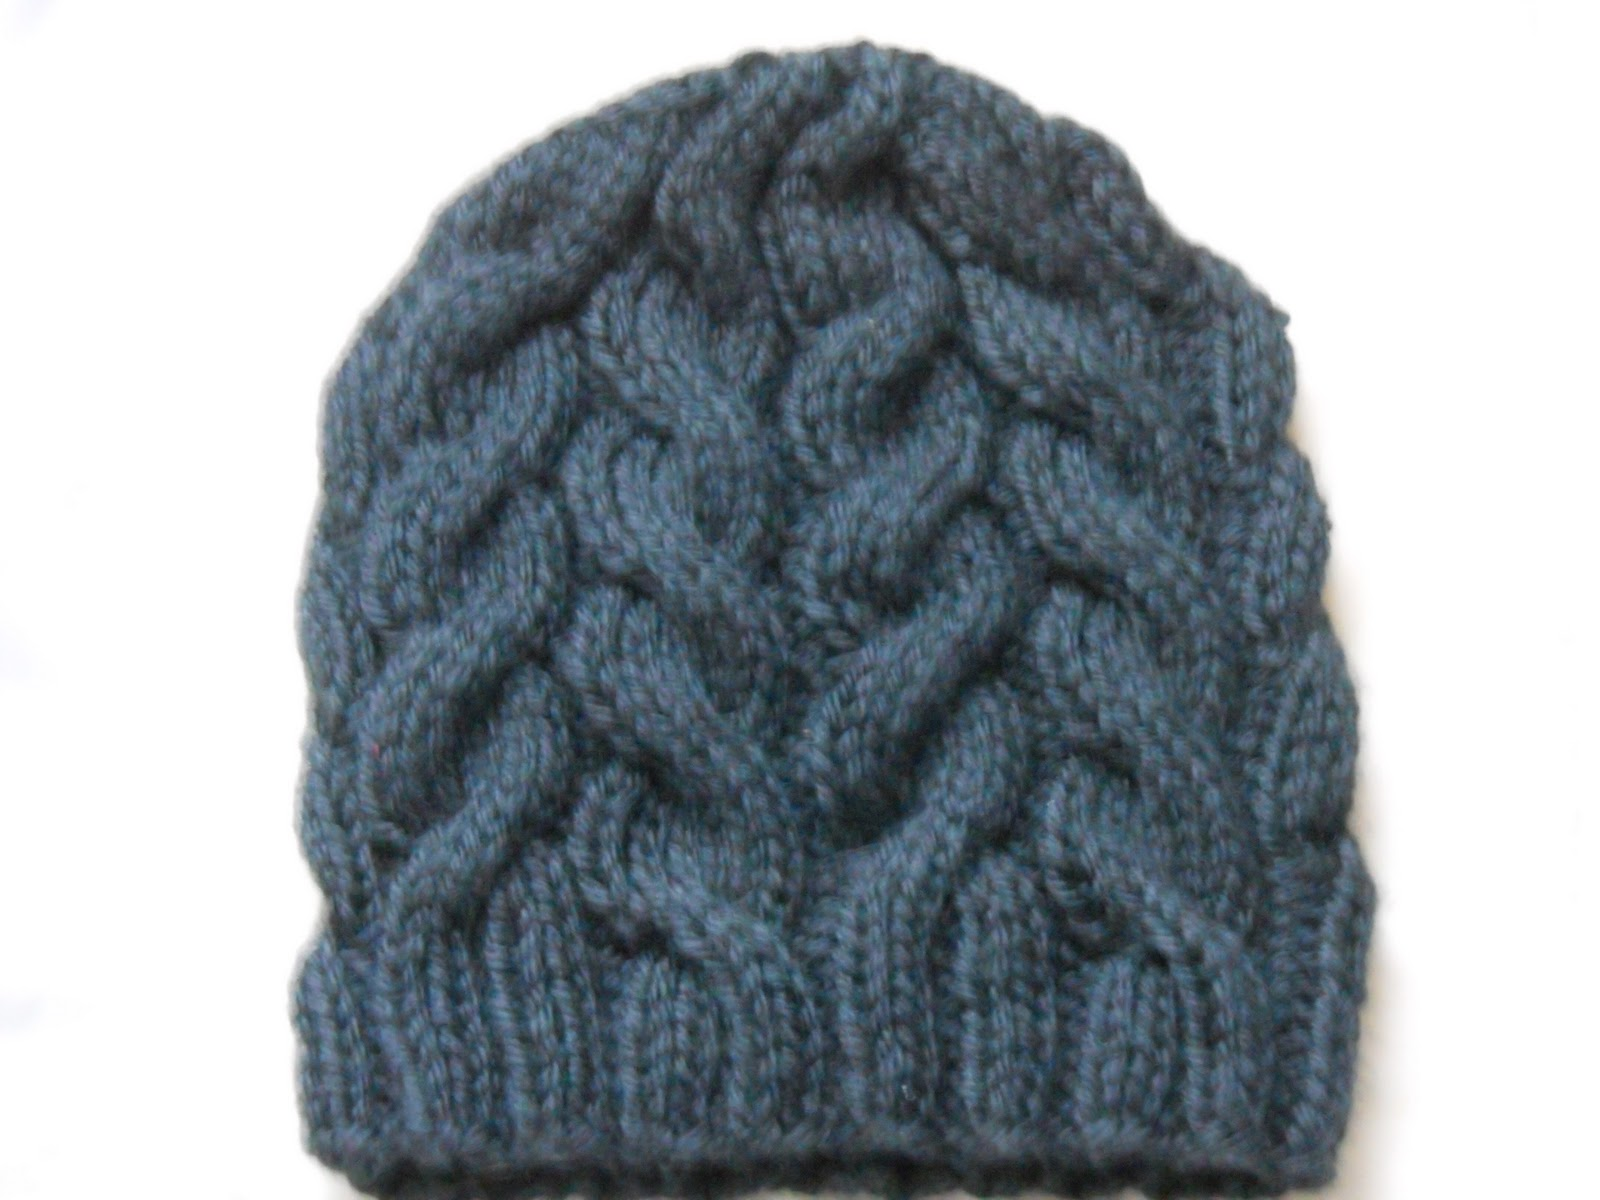 Knitted Patterns : Cable Knit Hat Pattern A Knitting Blog